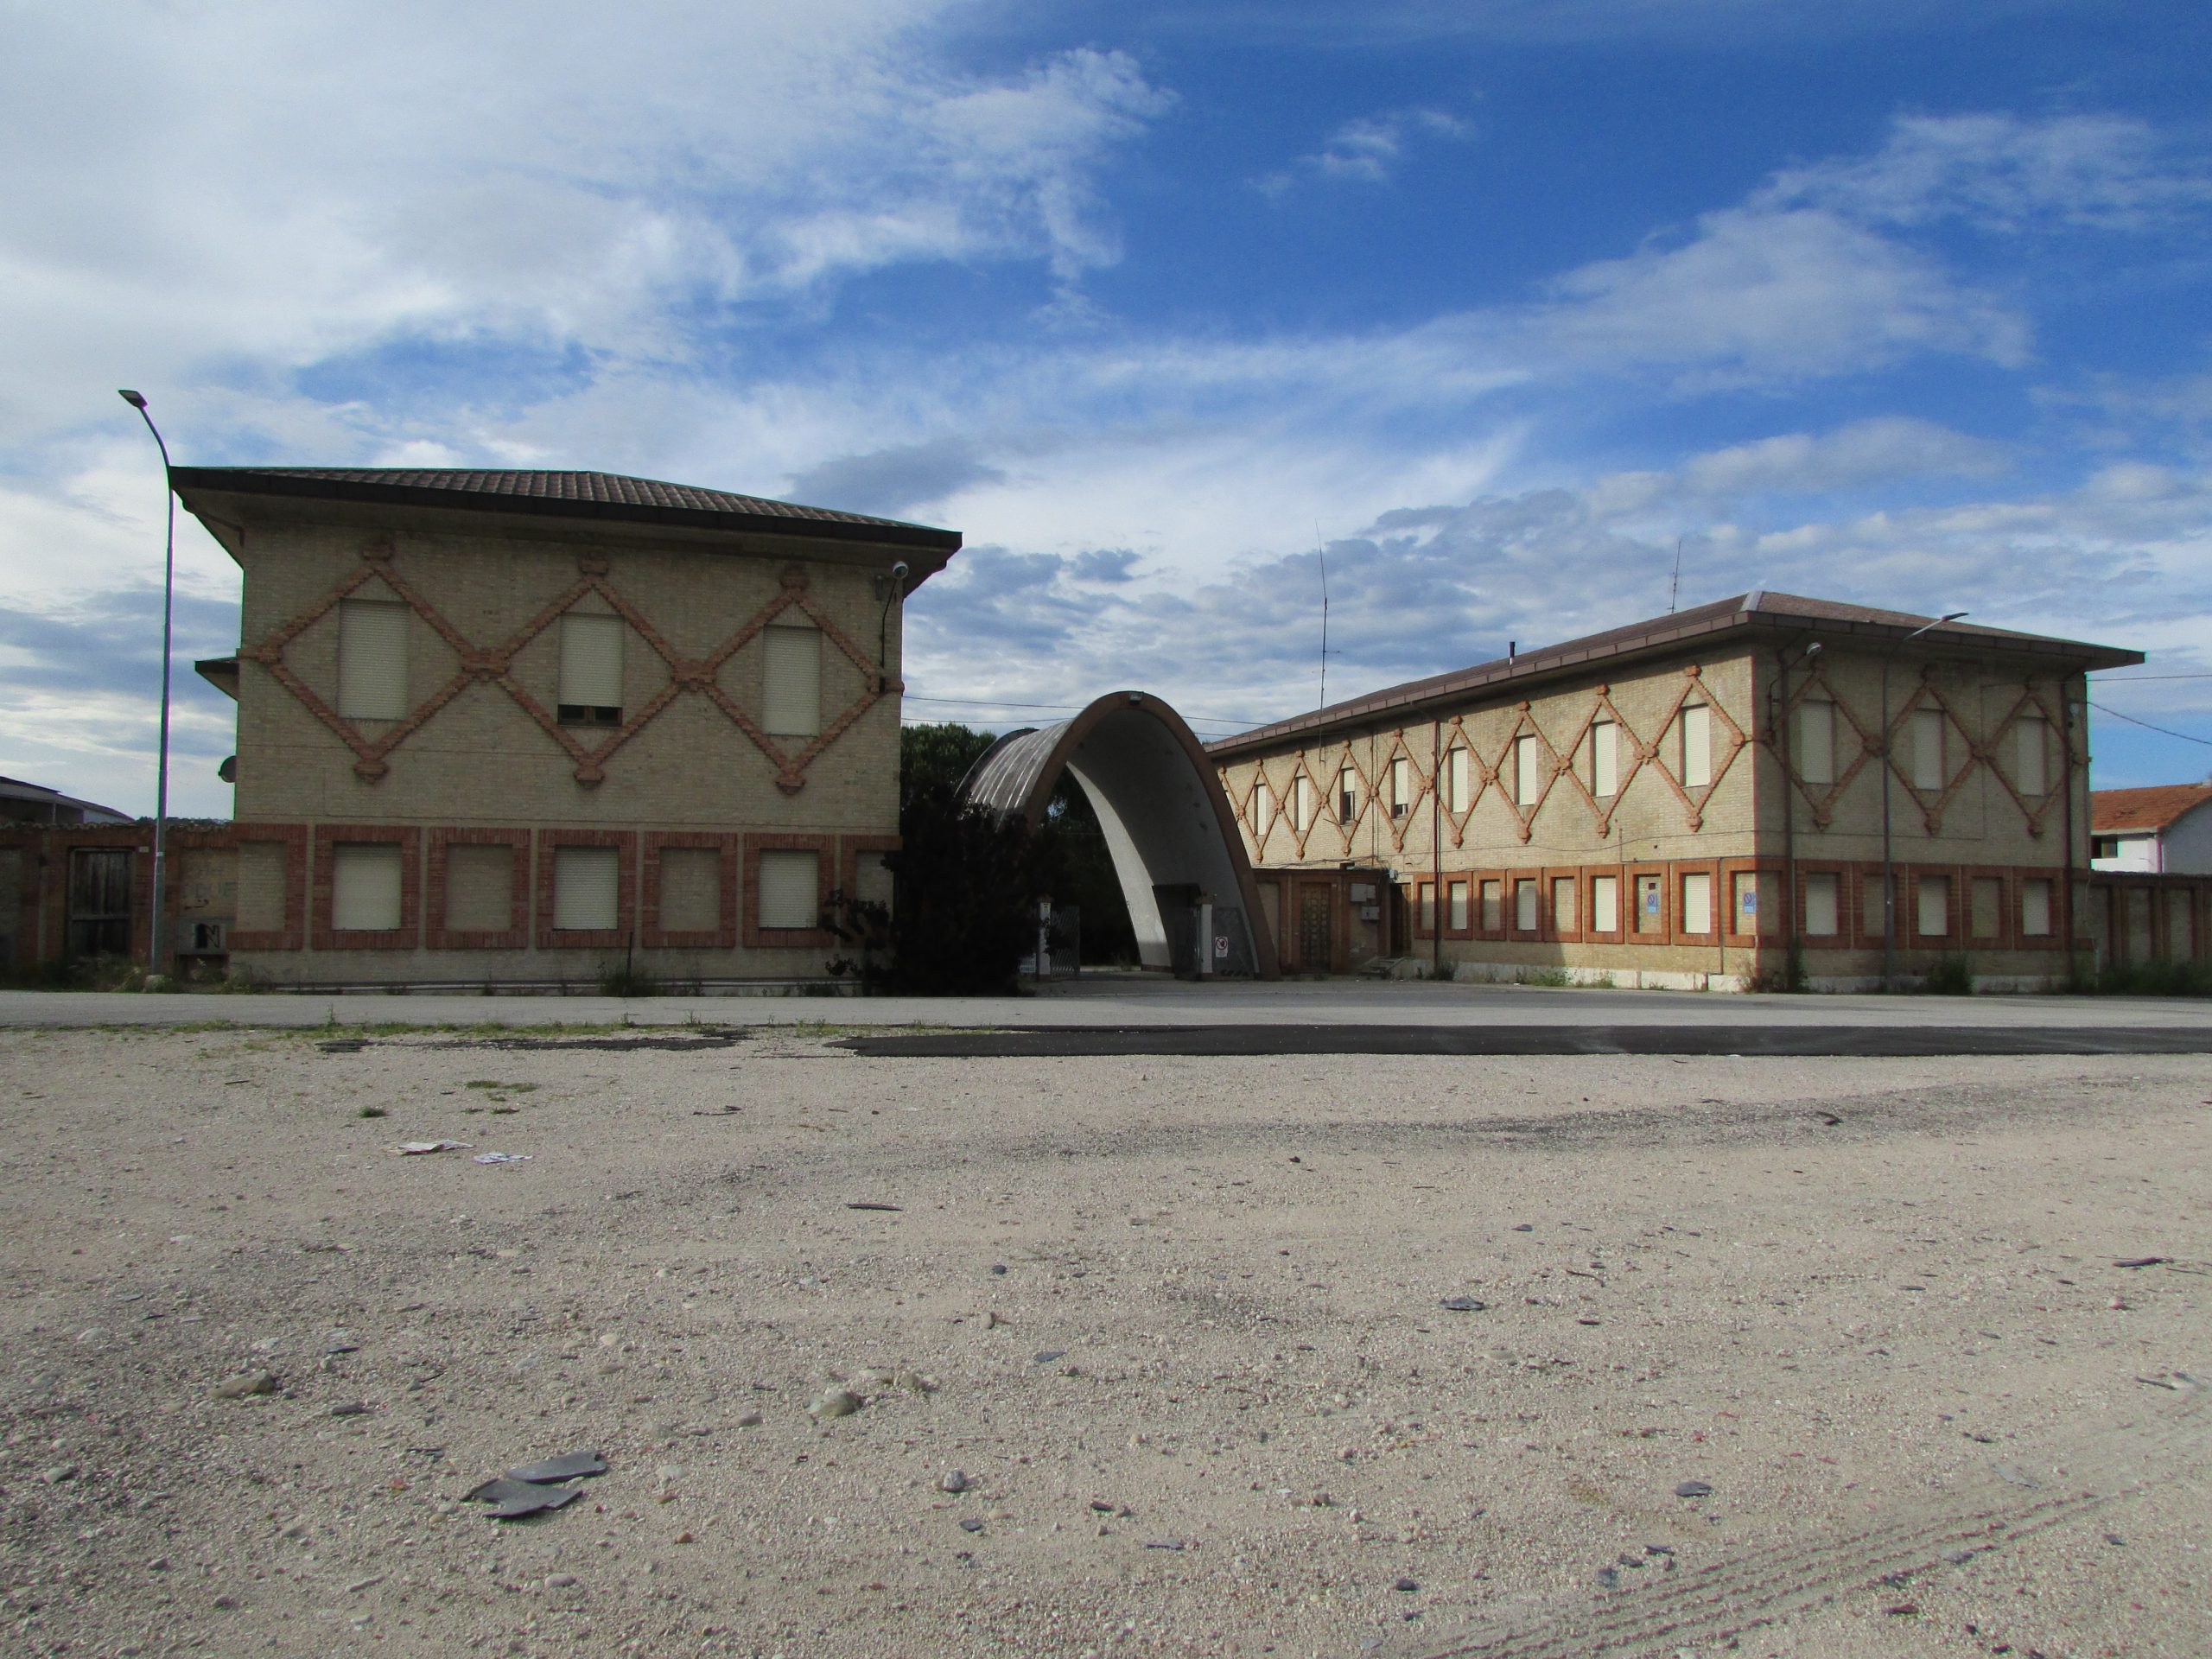 largest Croatian refugee camp was located in Fermo, Italy